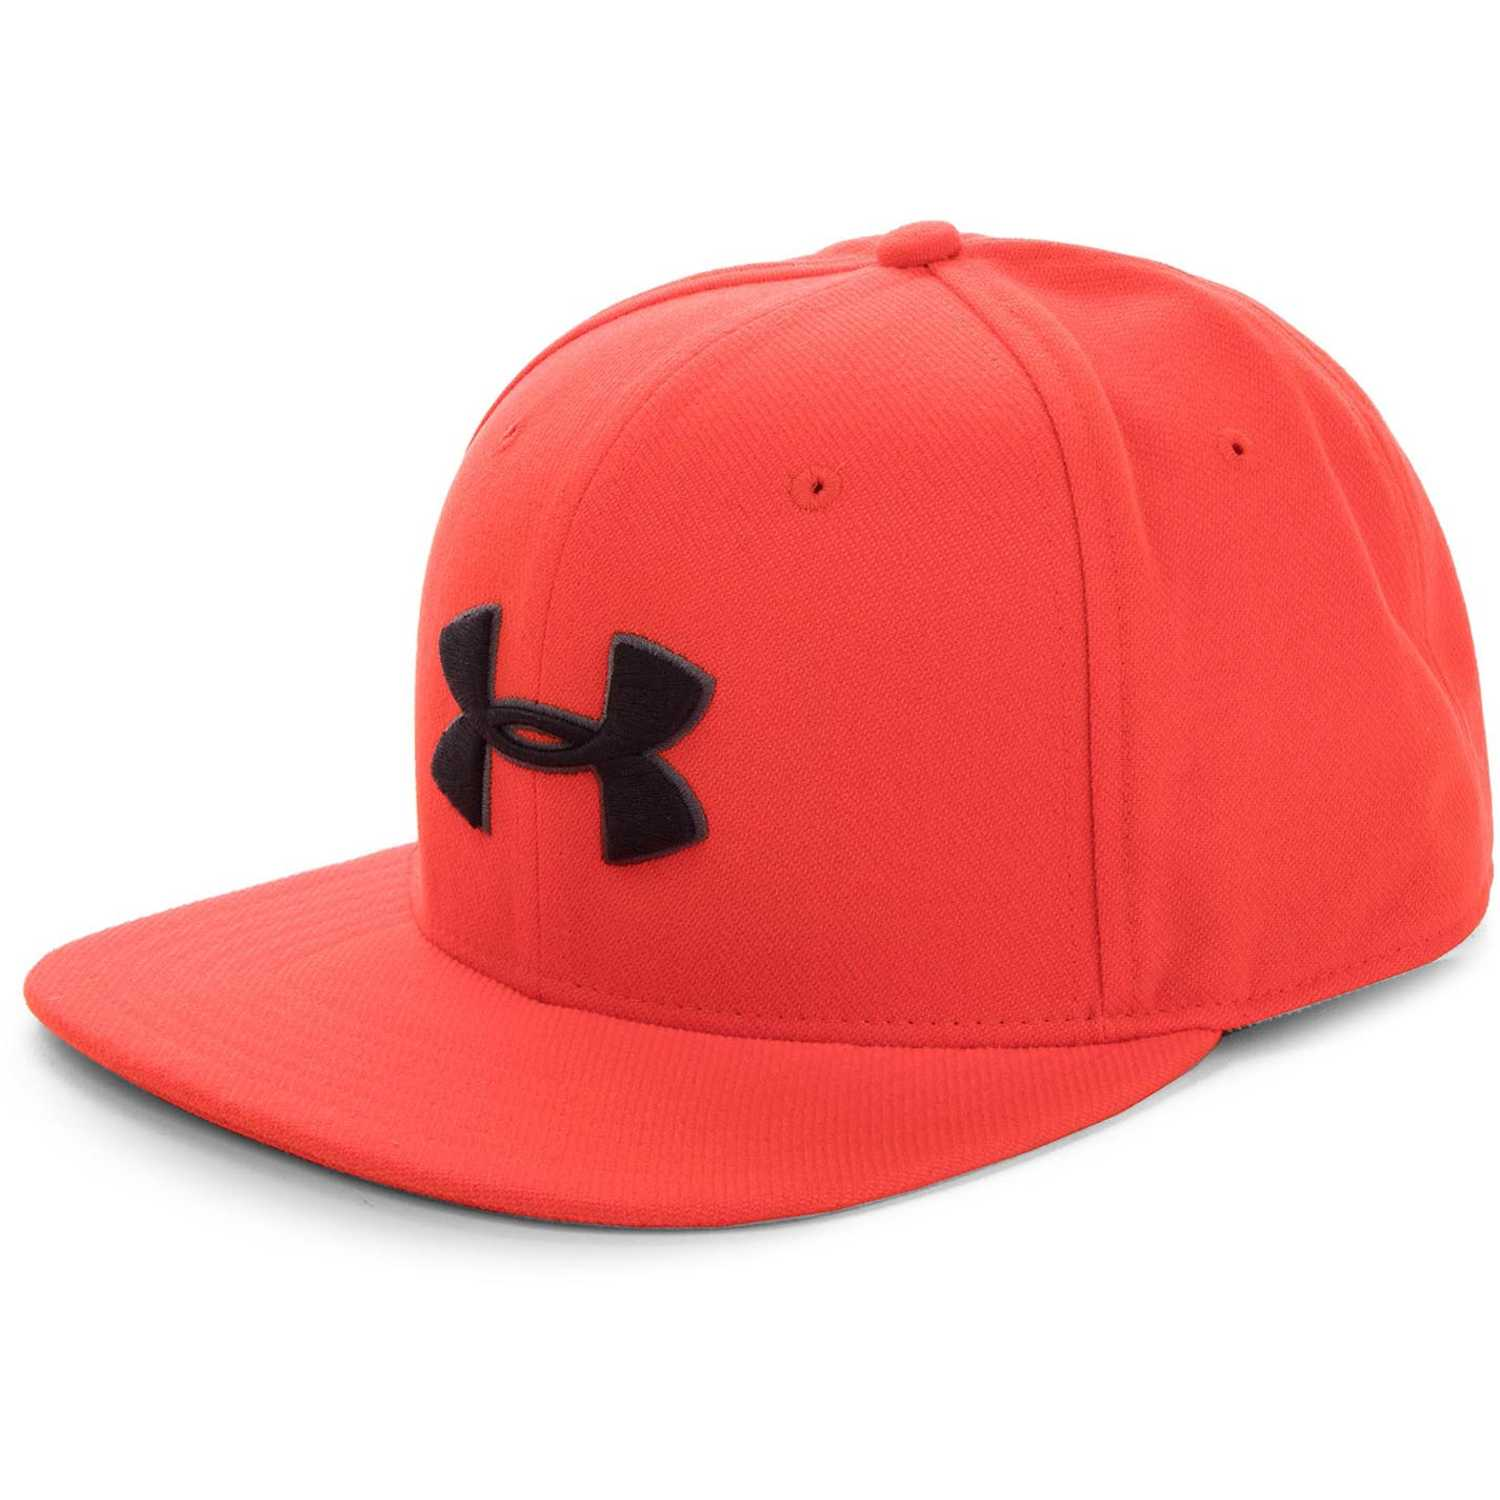 Gorro de Hombre Under Armour Naranja men's huddle snapback 2.0-red